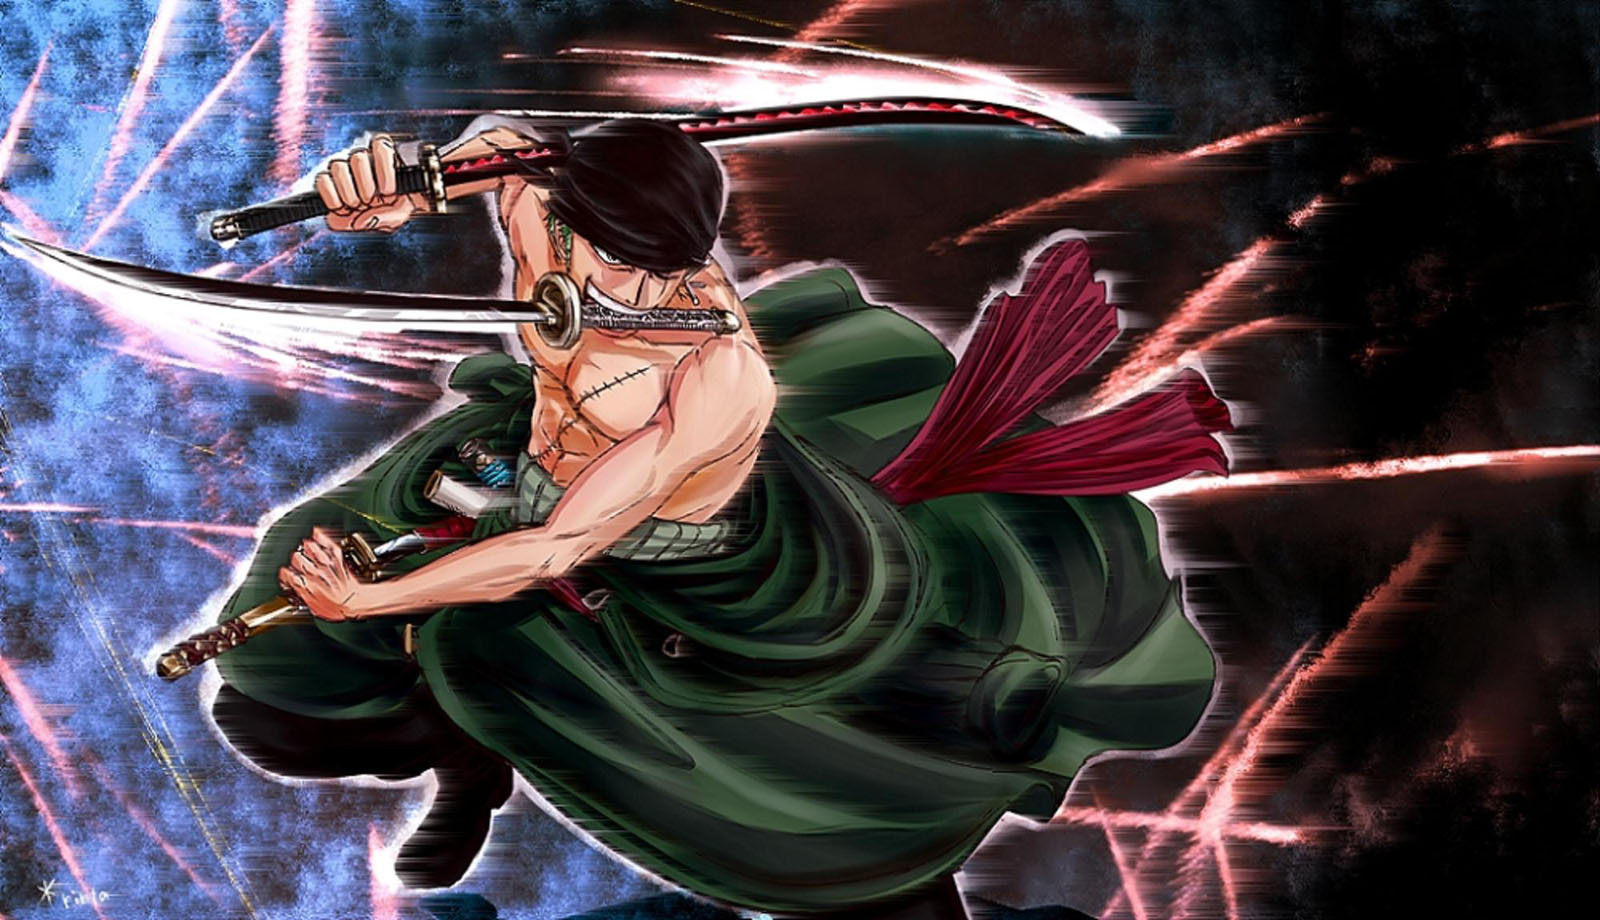 76 Roronoa Zoro Wallpapers On Wallpapersafari